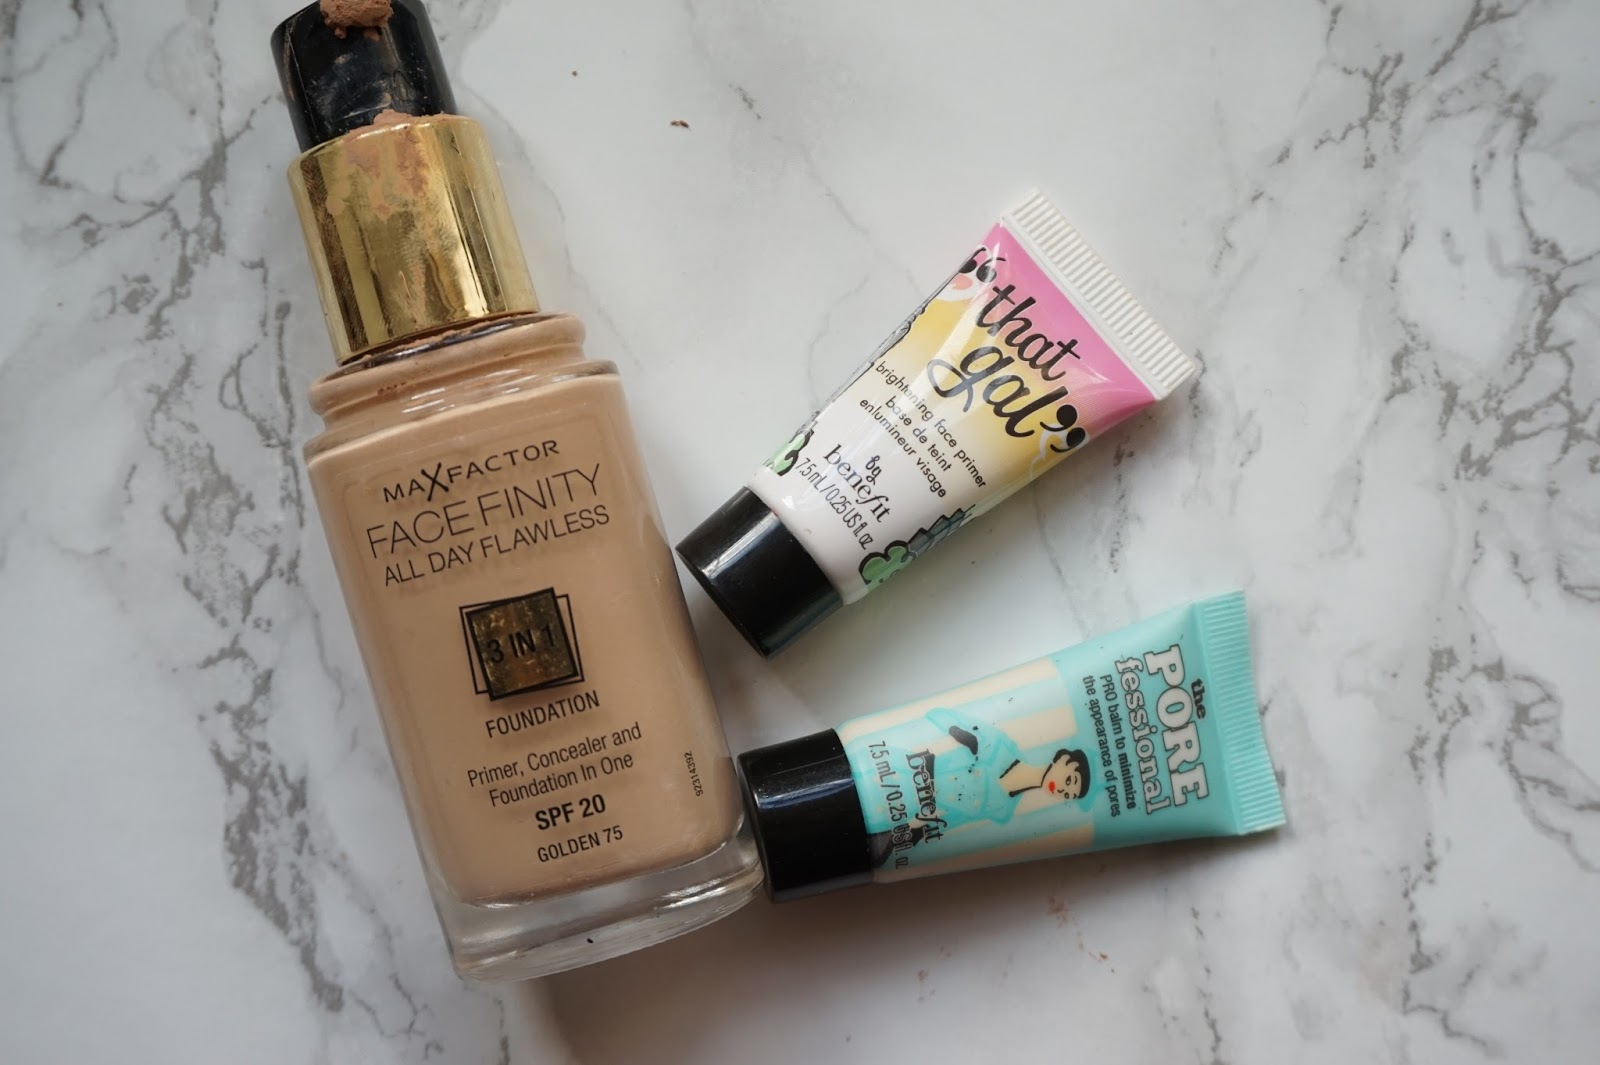 Maxfactor, facefinity foundation, benefit, primer,